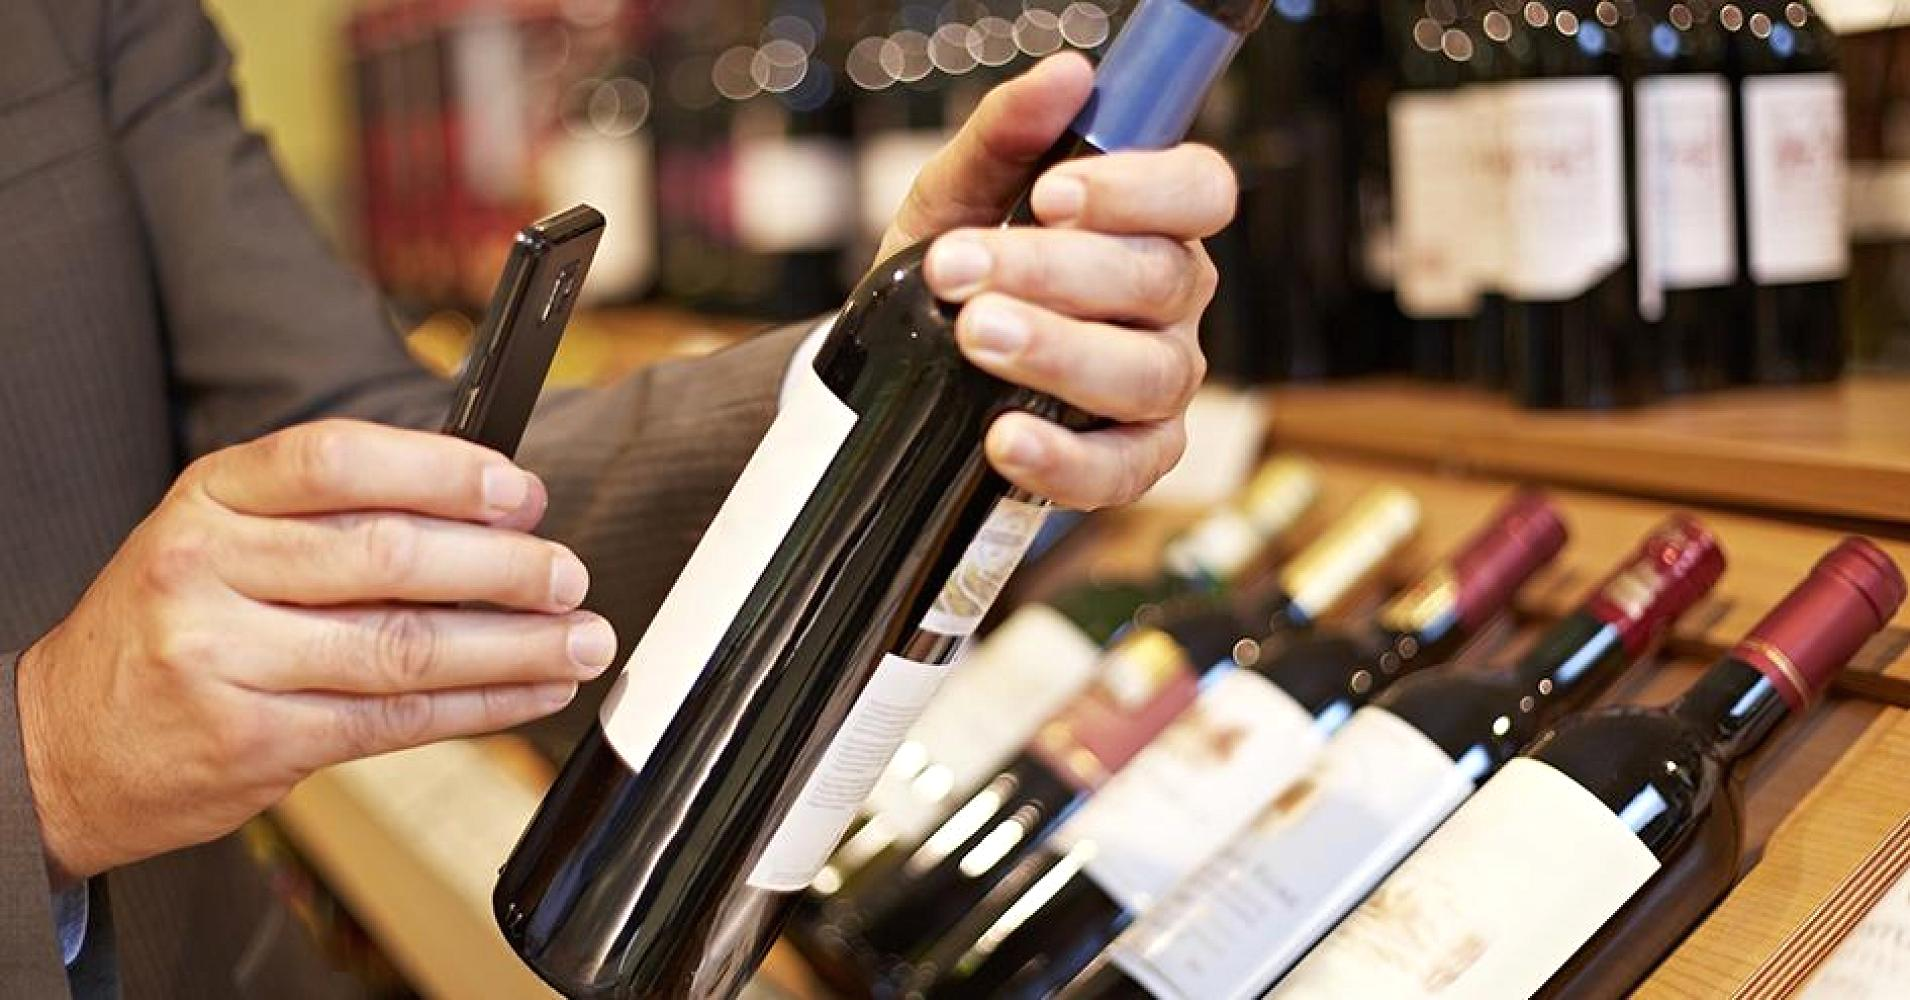 Can't decide on a bottle of wine? The Wine Ring app can help photo